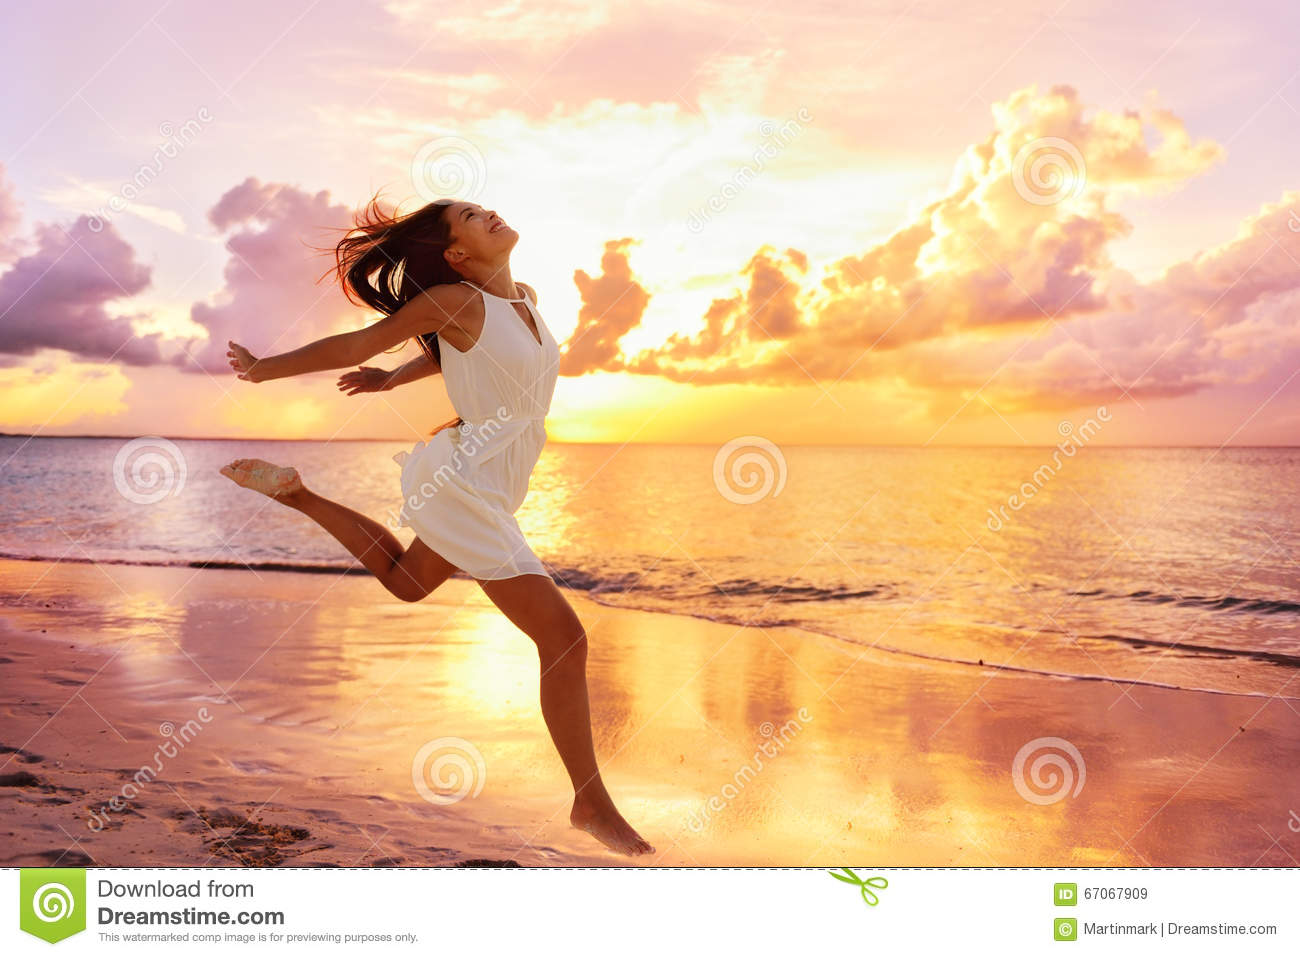 freedom-wellness-happiness-concept-happy-woman-well-being-carefree-asian-feeling-blissful-jumping-joy-peaceful-beach-67067909.jpg